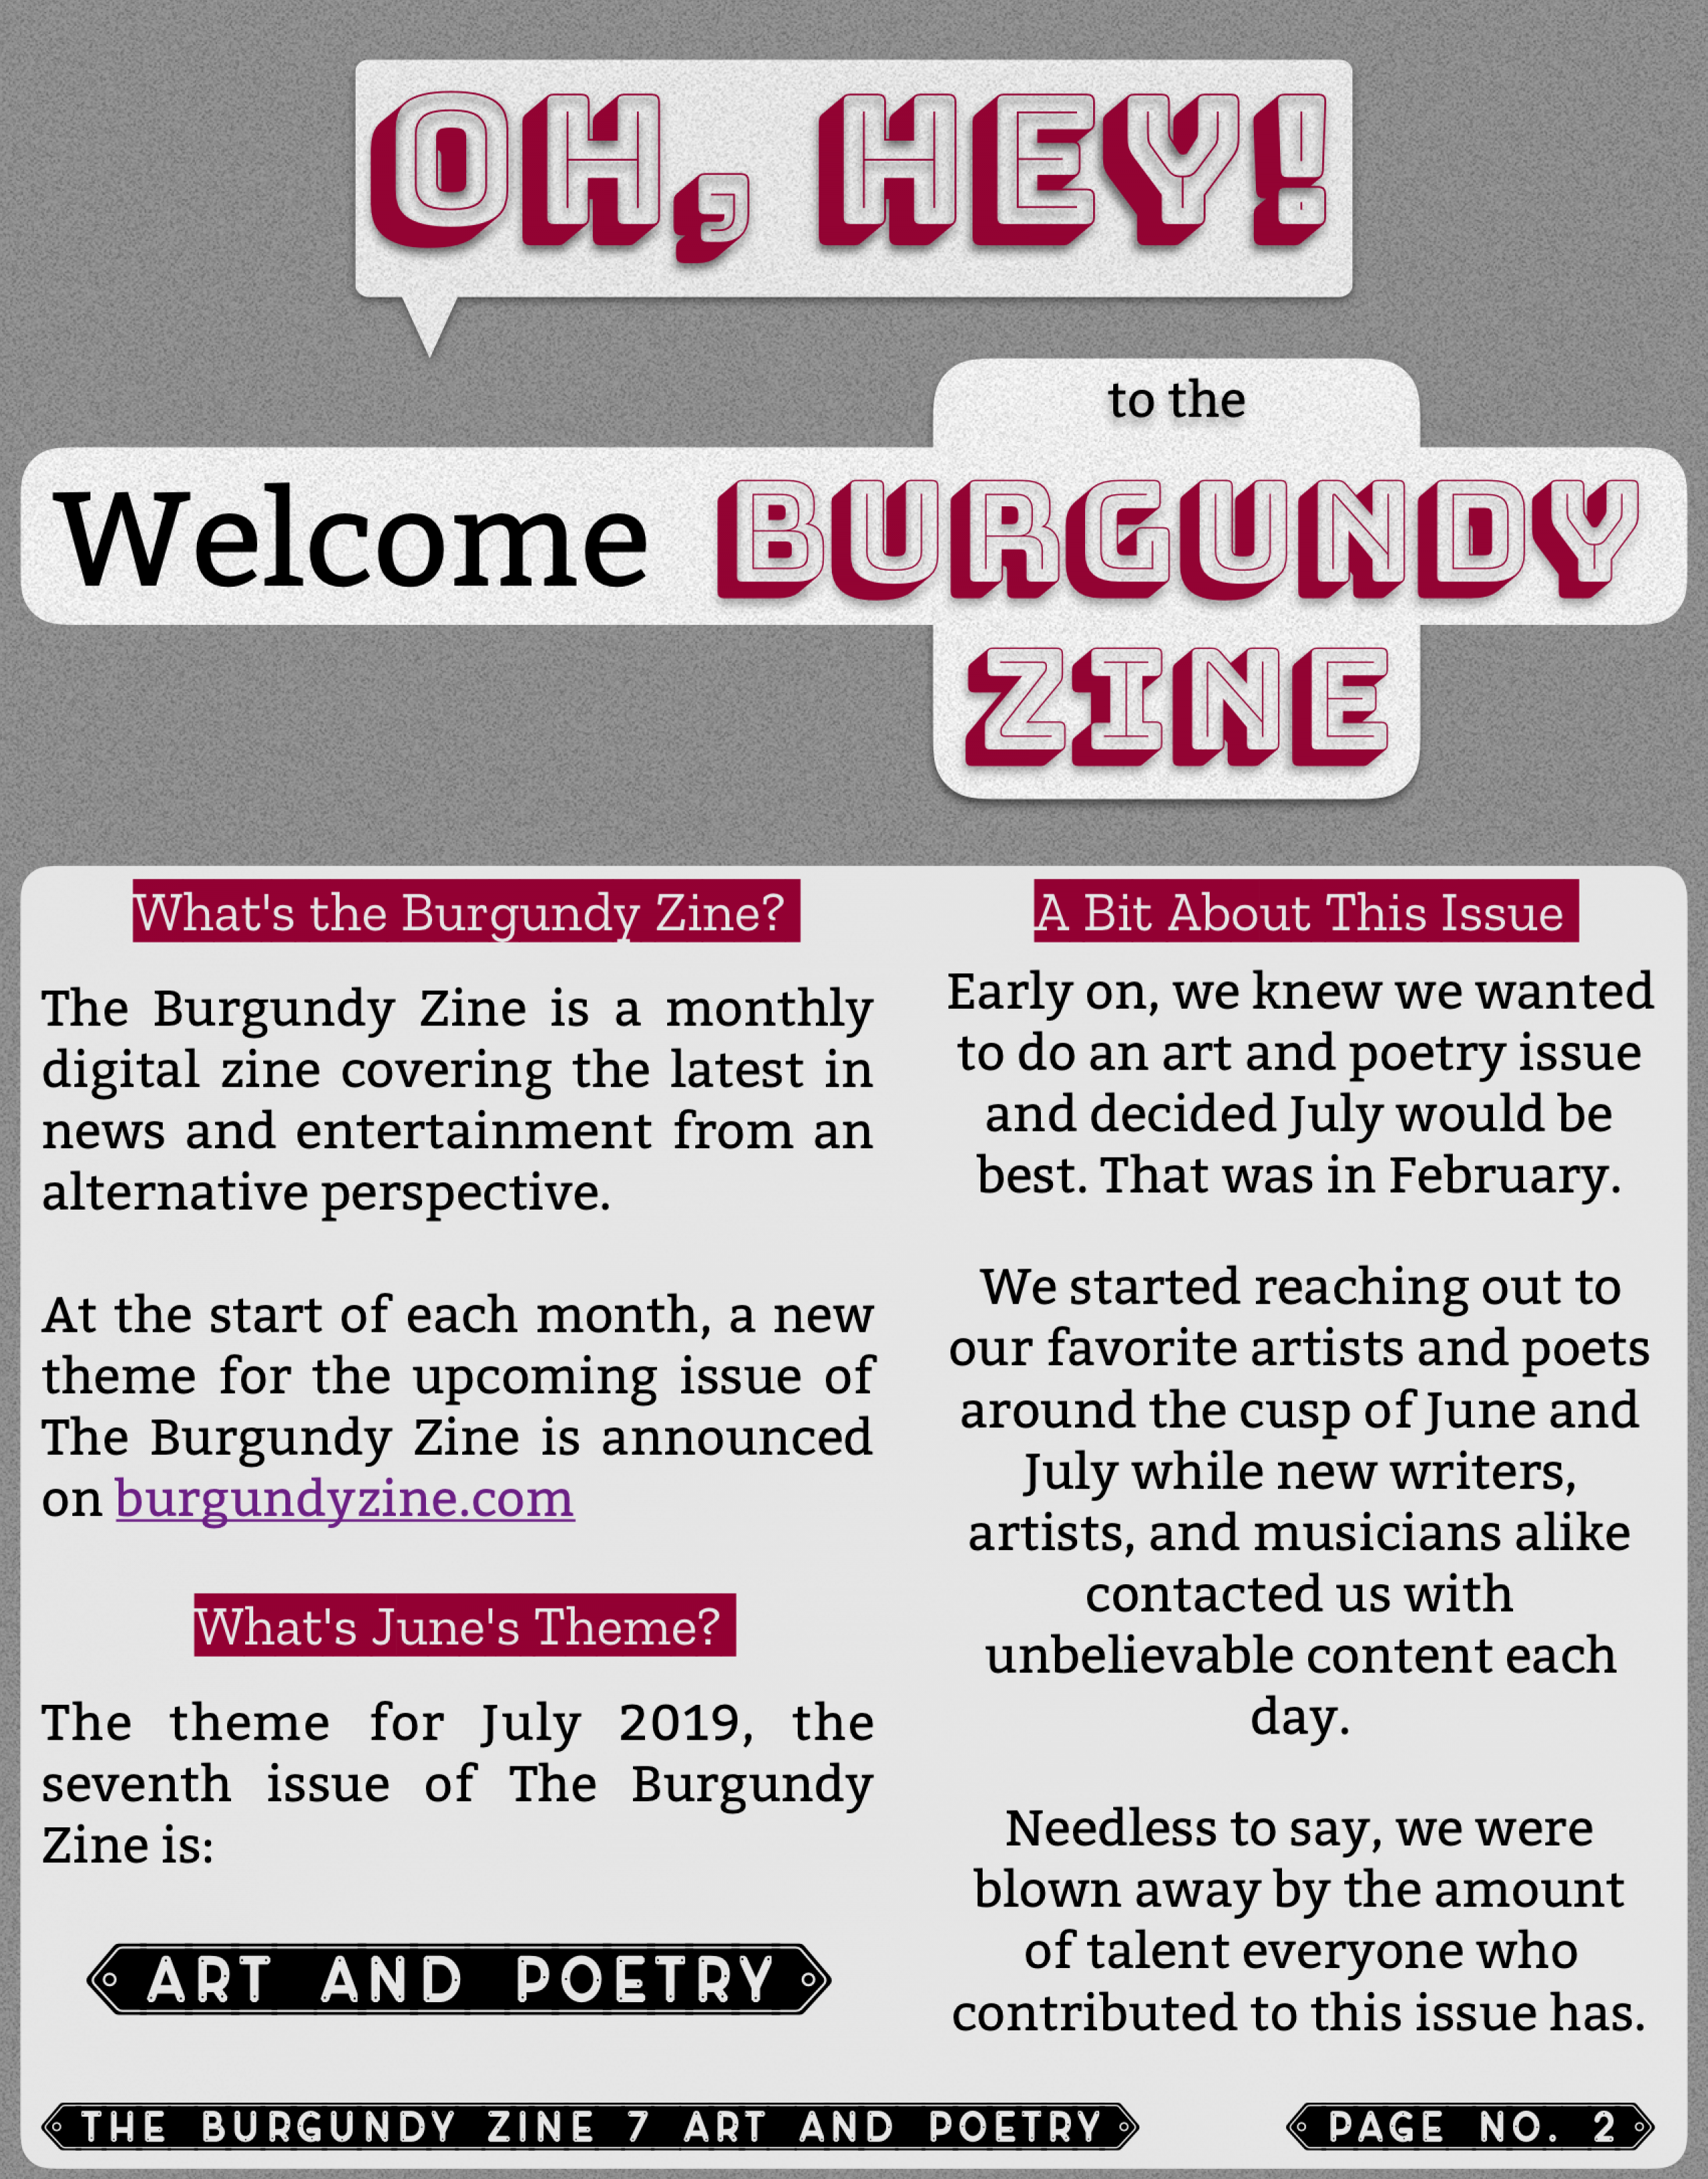 The Burgundy Zine #7 Art and Poetry 002